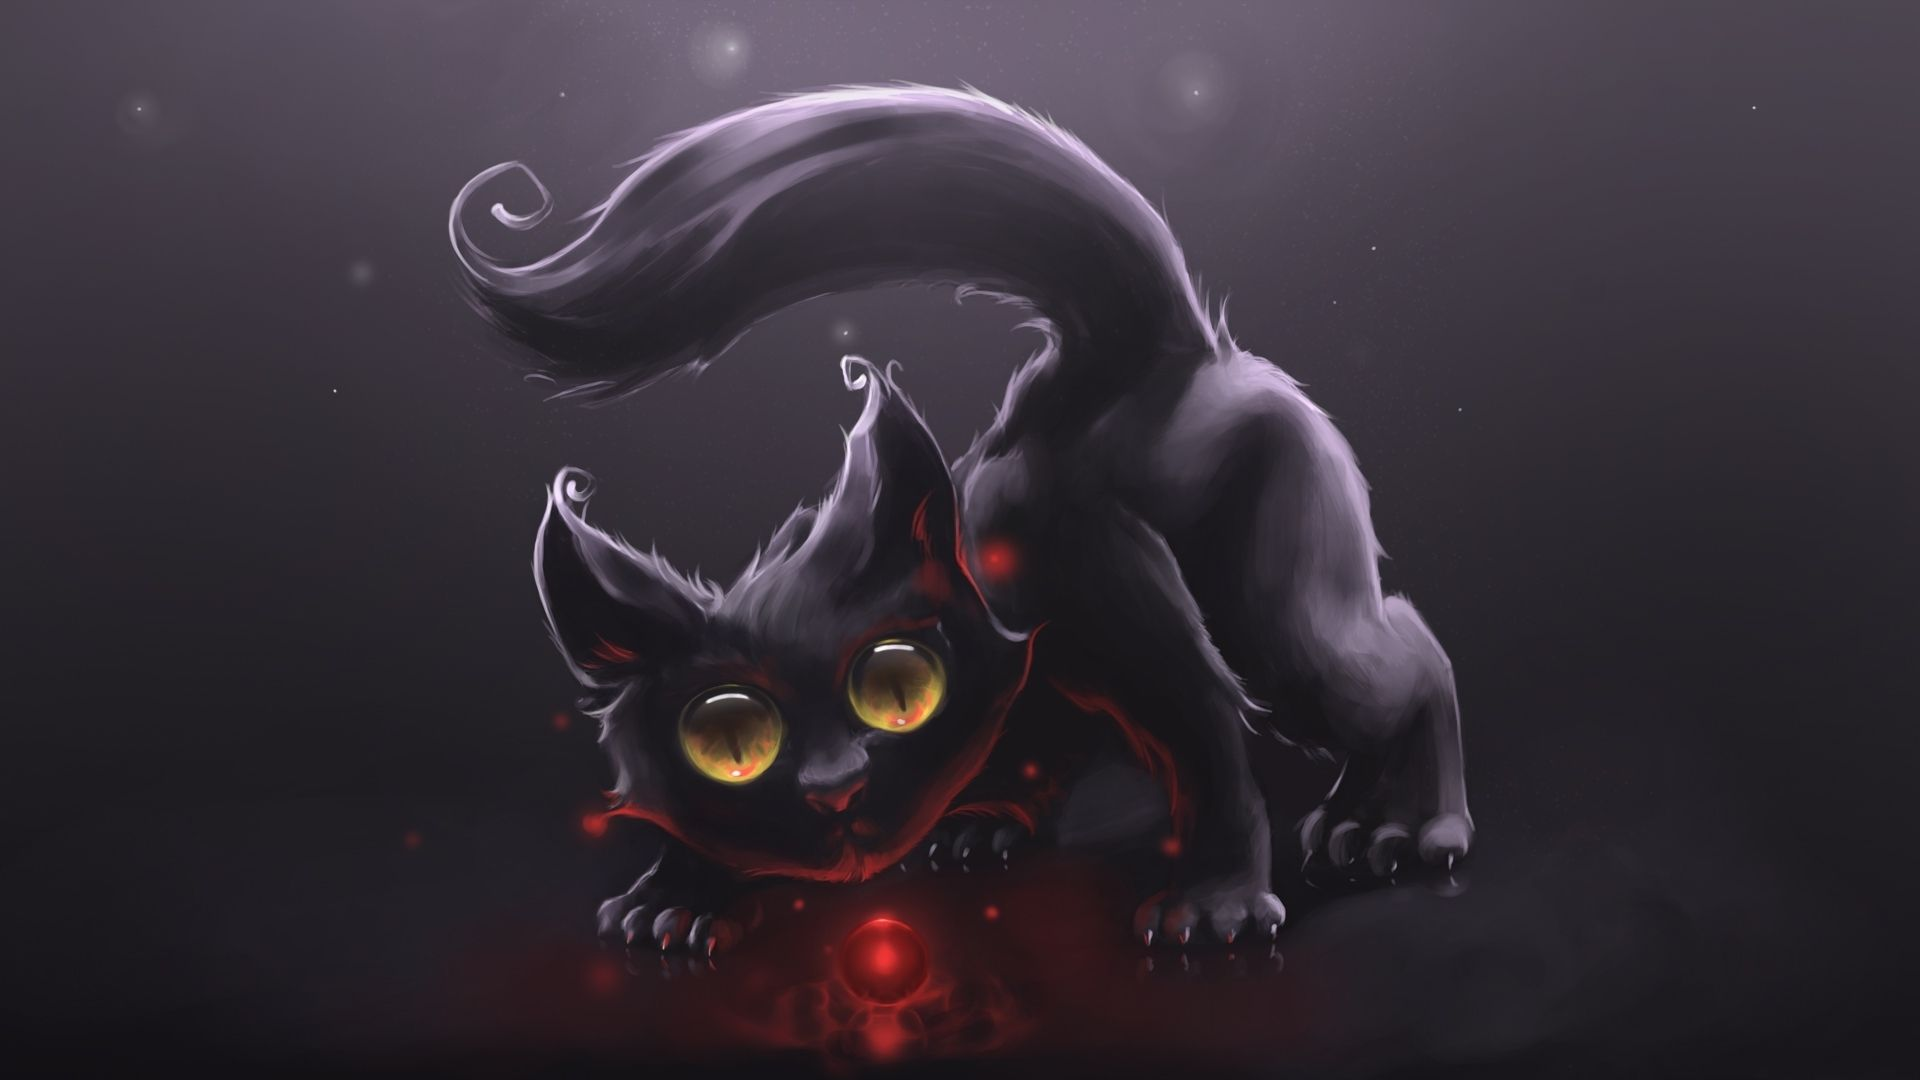 Most Wanted Wallpapers Black Cat Art Cute Black Wallpaper Black Cat Anime Anime black cat wallpaper